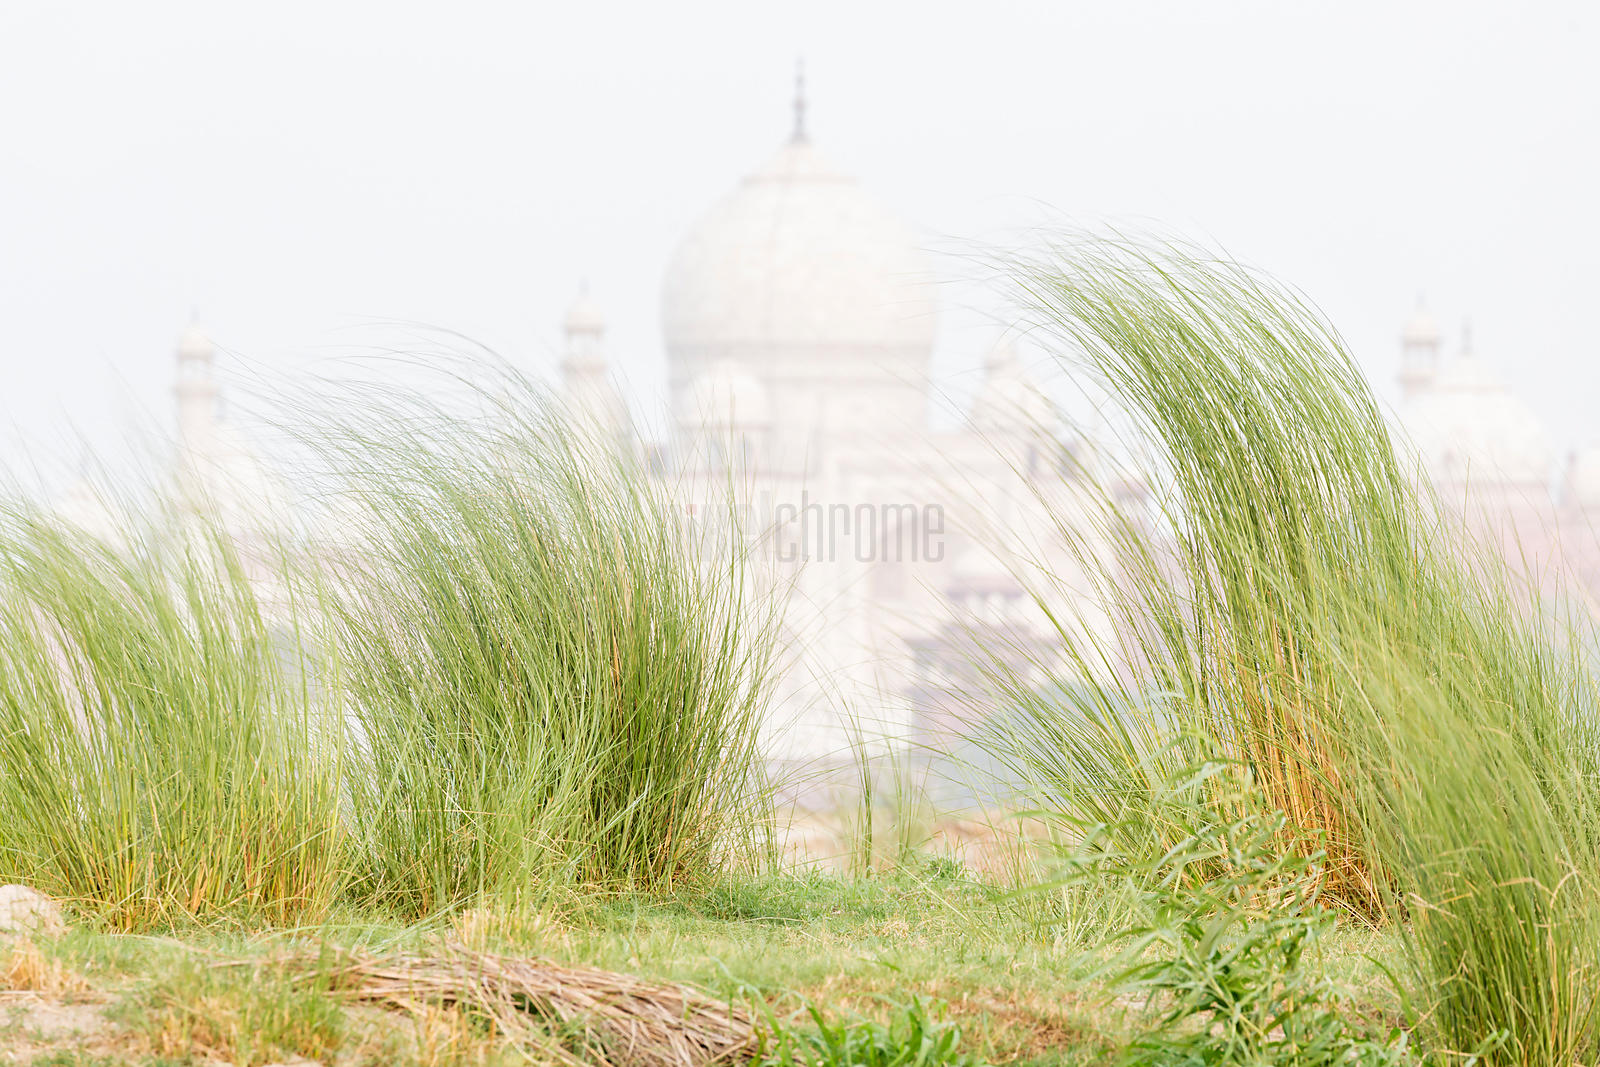 The Taj Mahal and Yamuna Floodplain Grasses